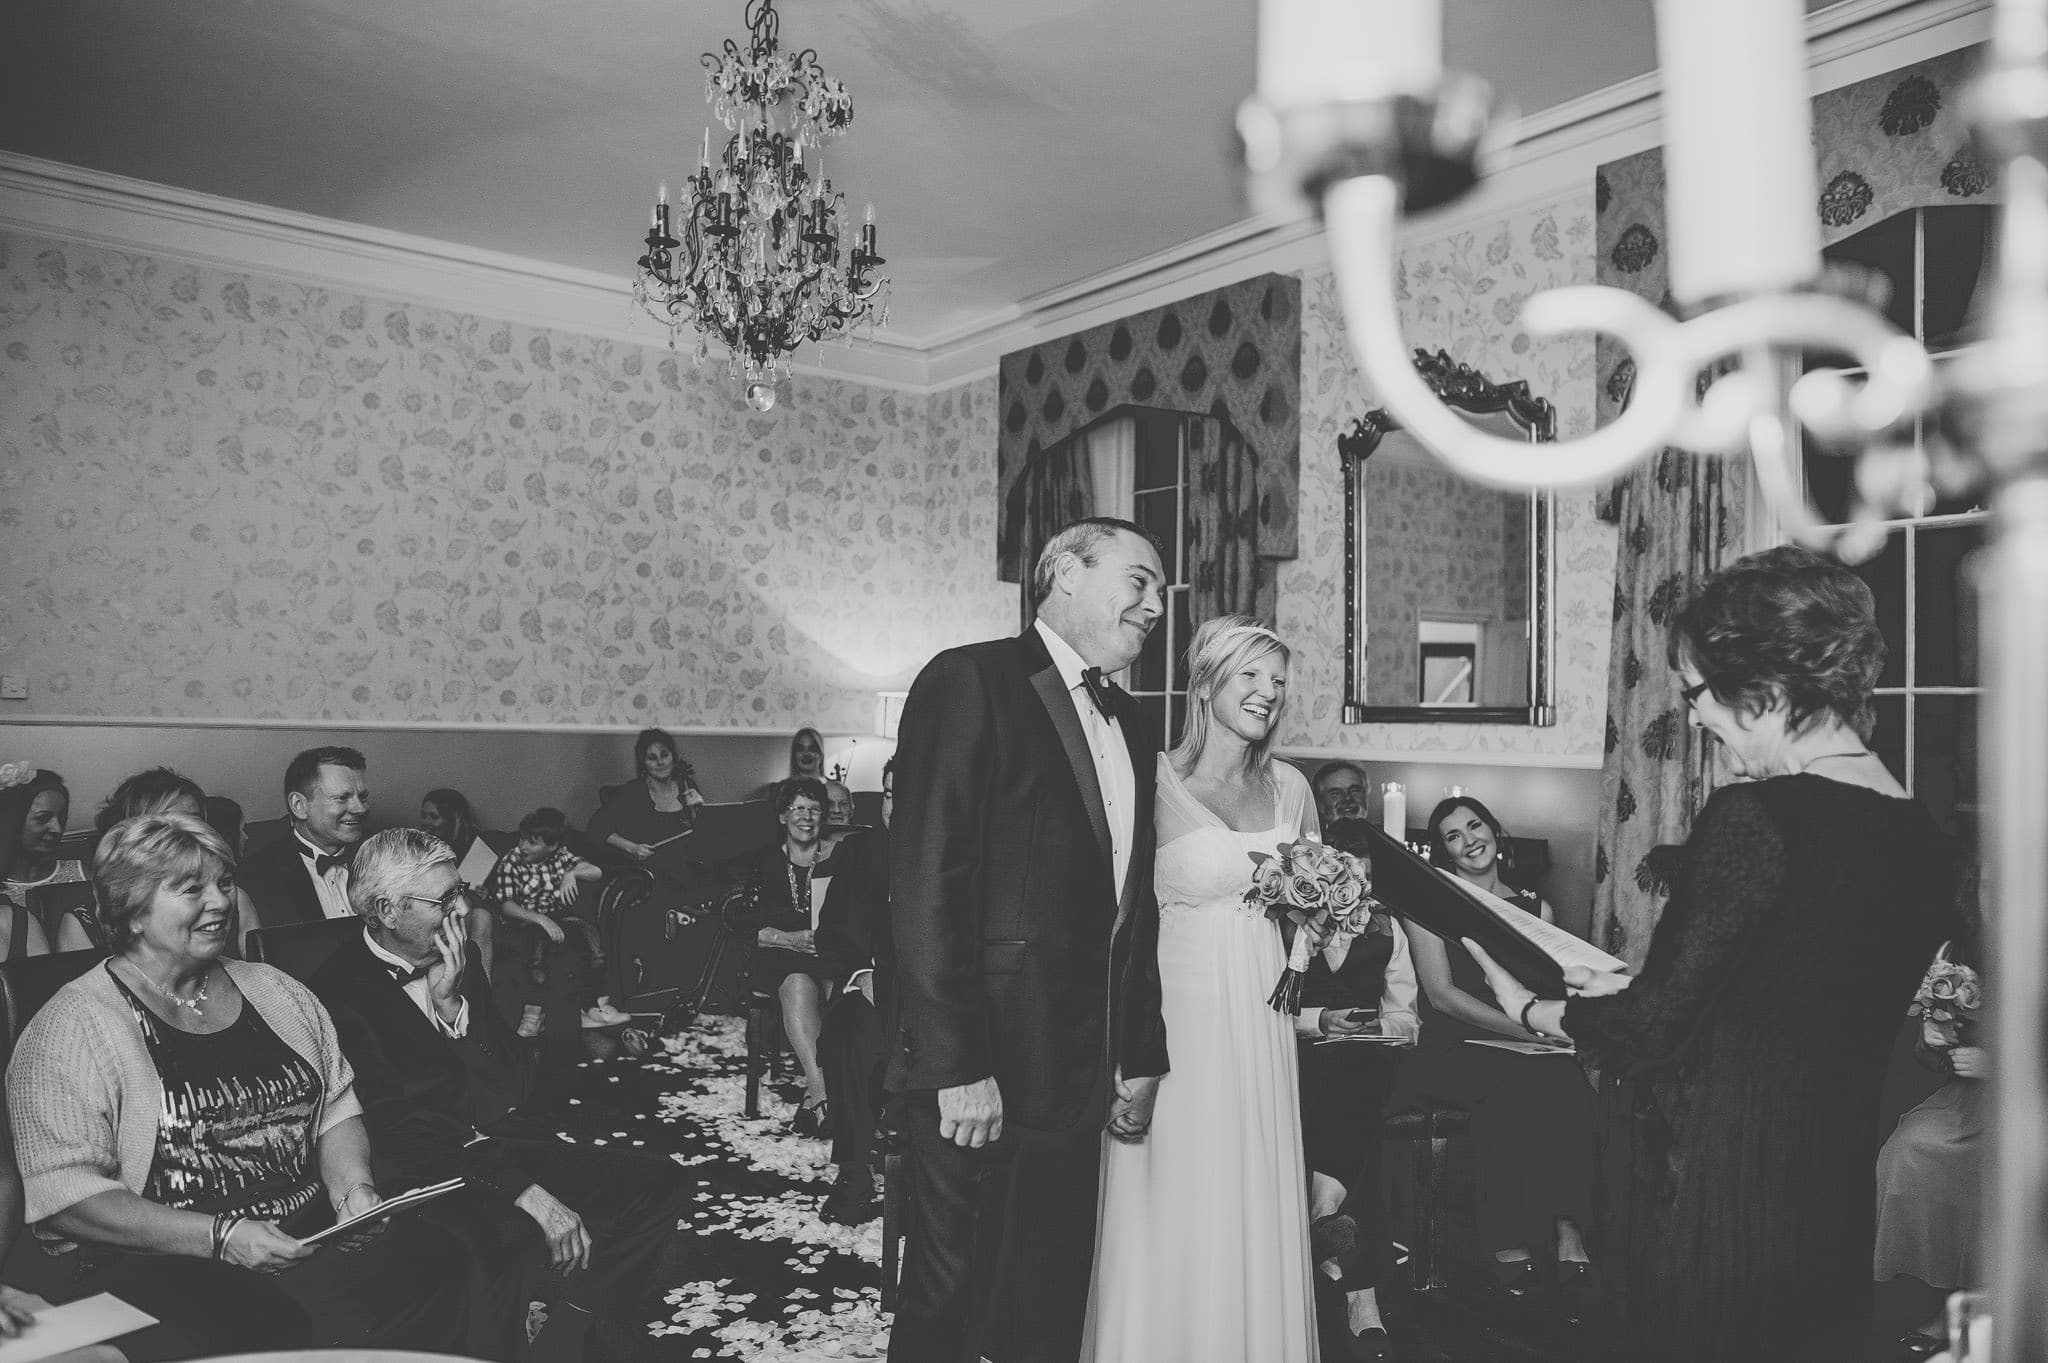 wedding photography west midlands 41 - Wedding photography West Midlands | Claire + Stephen